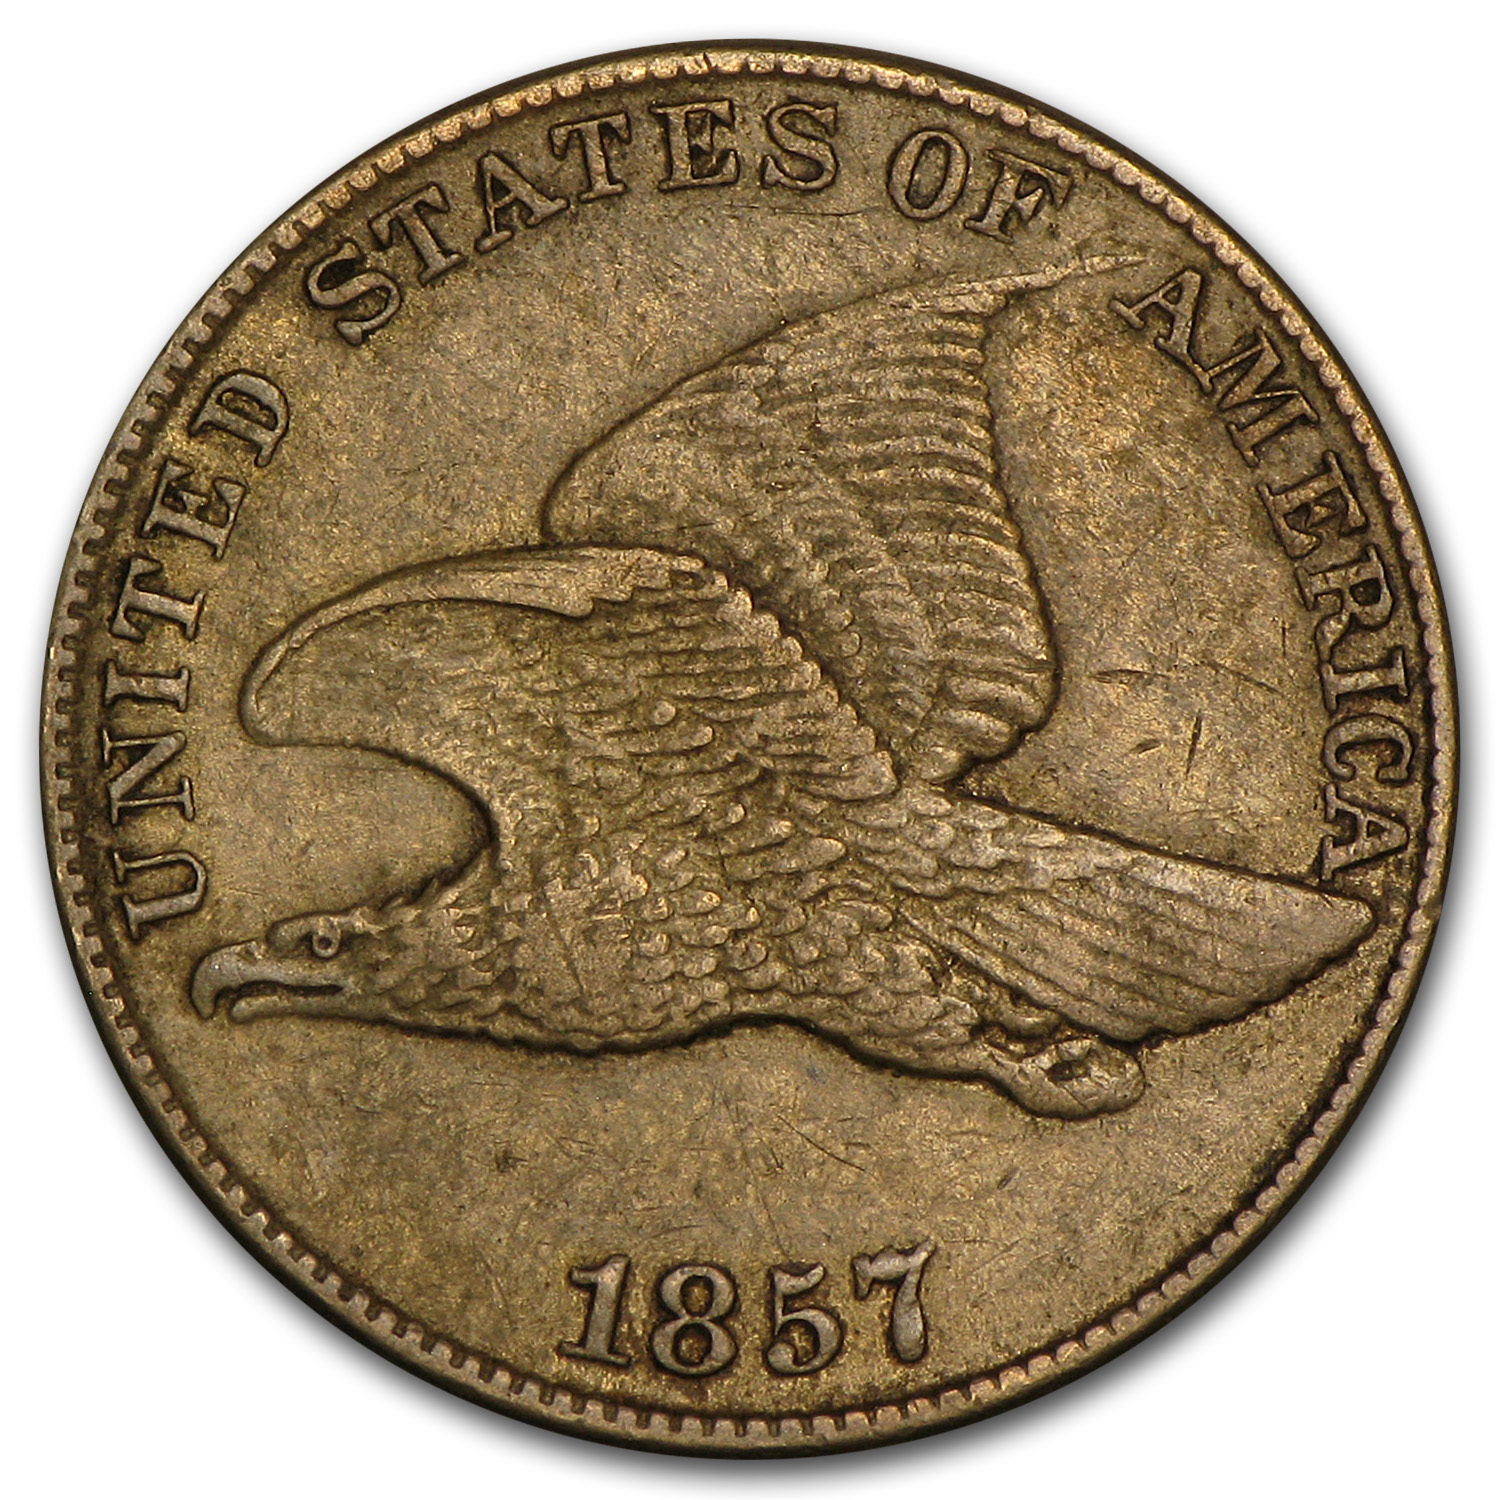 1857-1858 Flying Eagle Cents (Extra Fine)